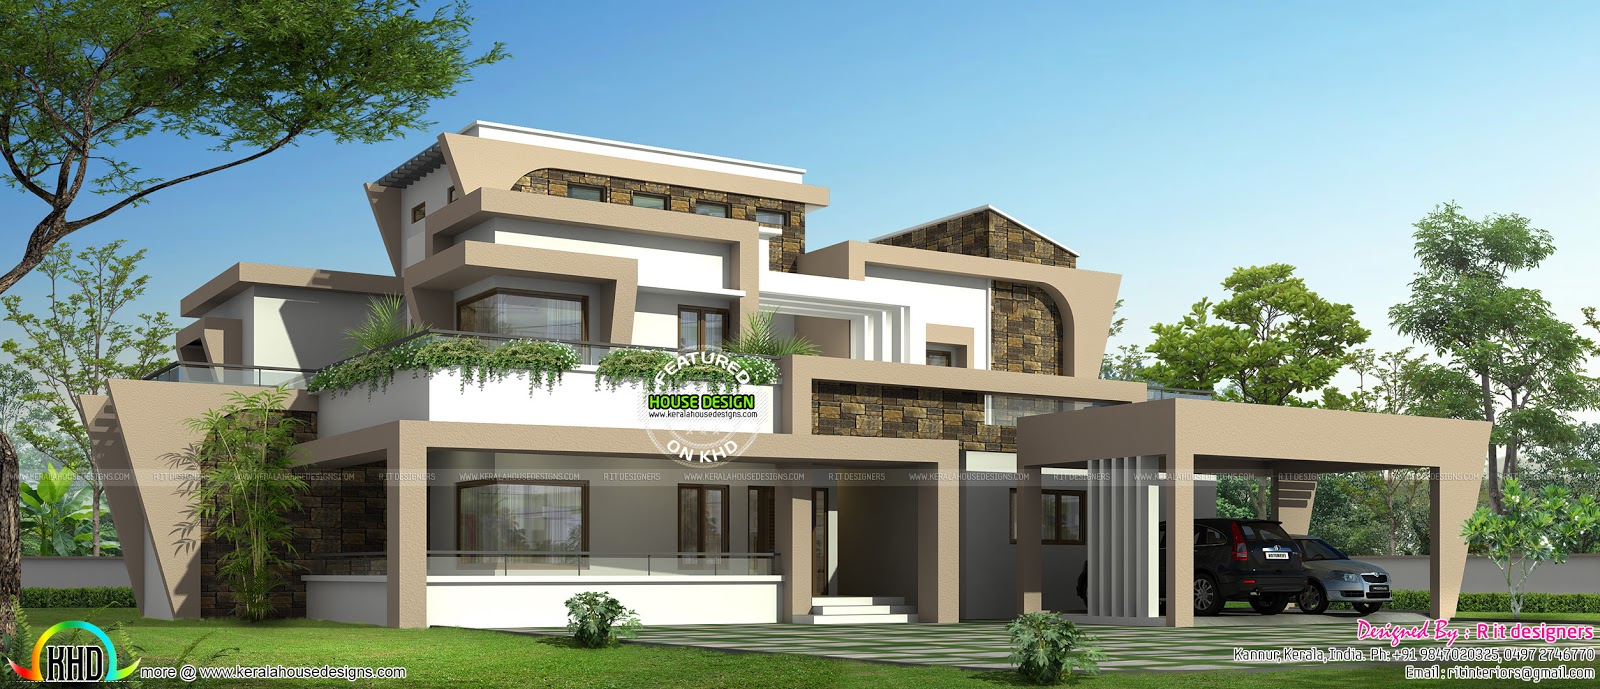 Unique modern home design in Kerala - Kerala home design ...